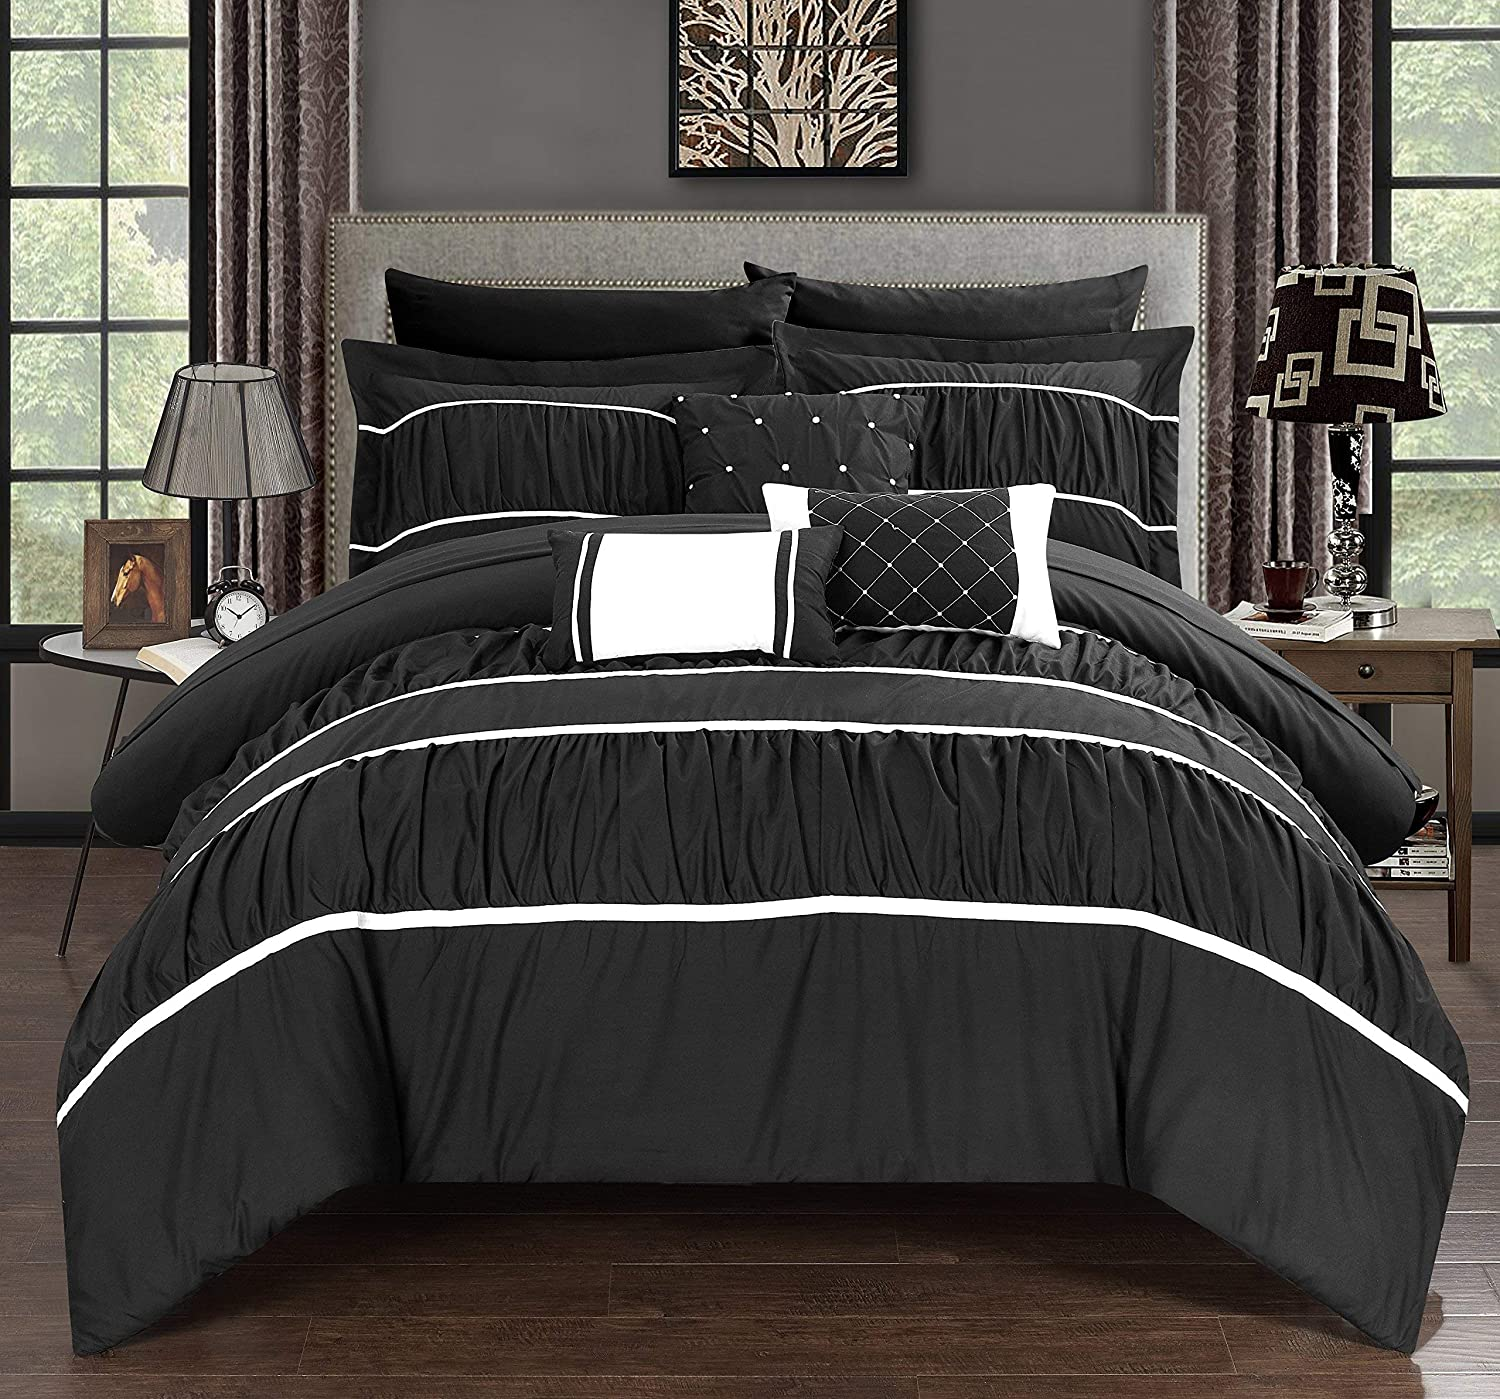 Chic Home Cheryl Comforter, Queen, Black